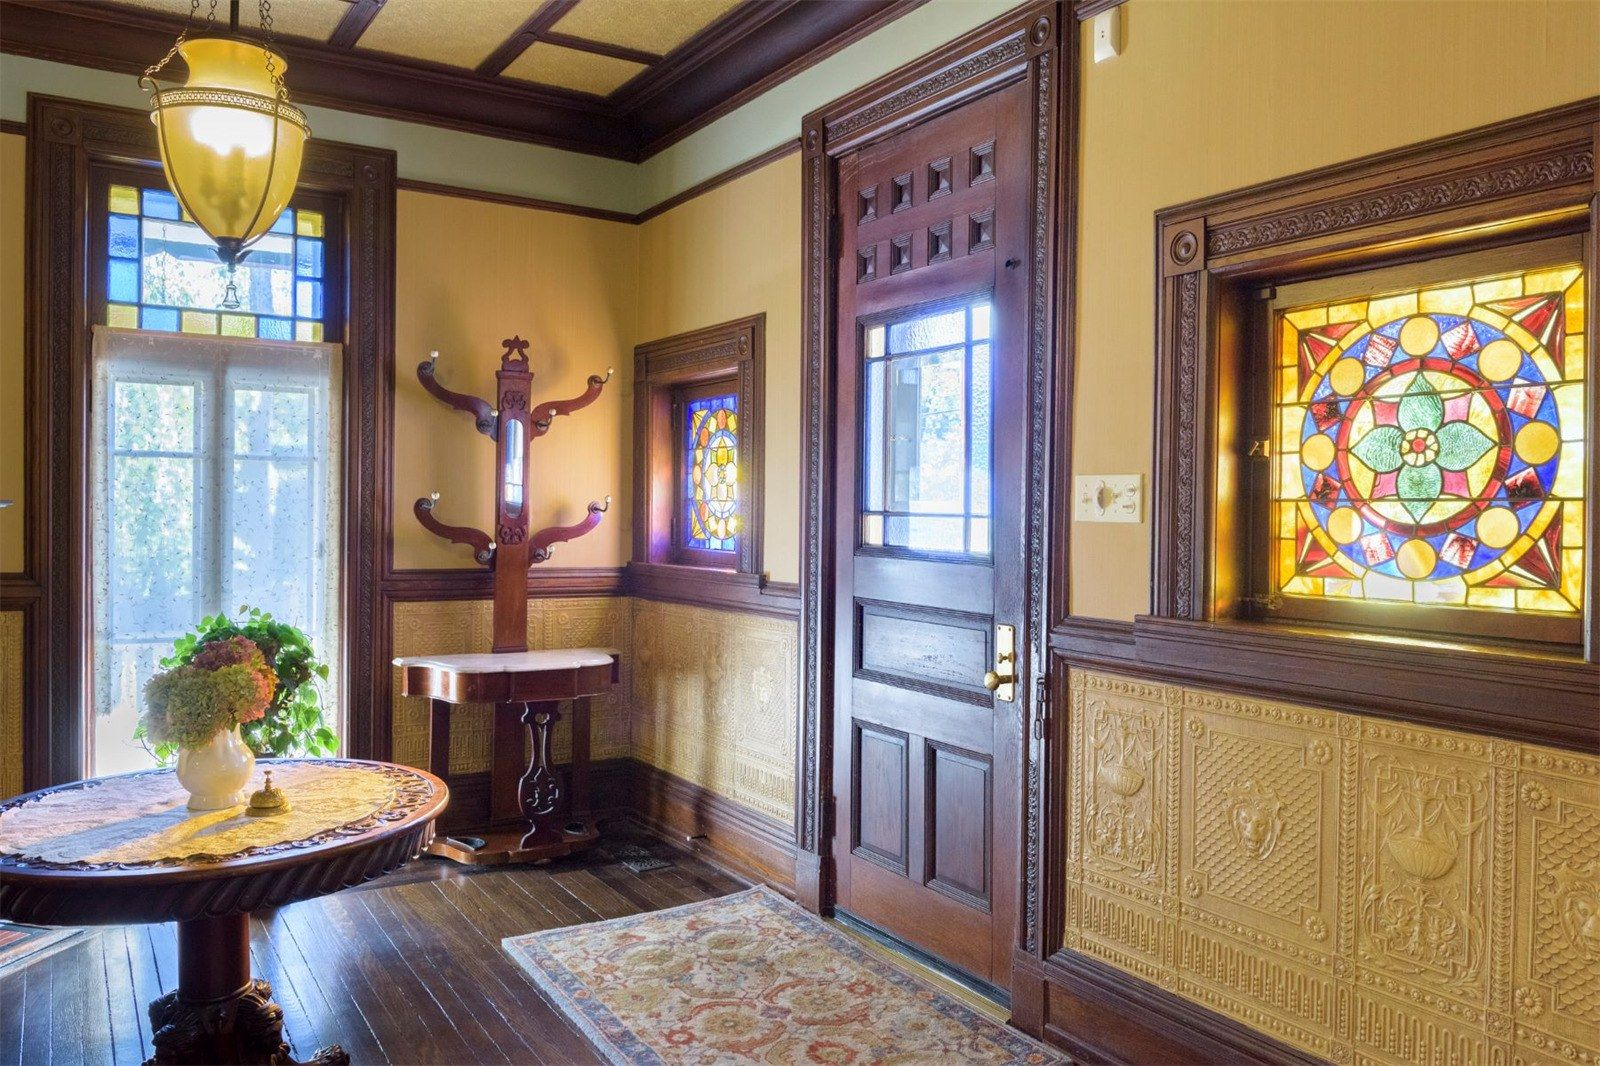 52m queen anne victorian in nyack comes with its own